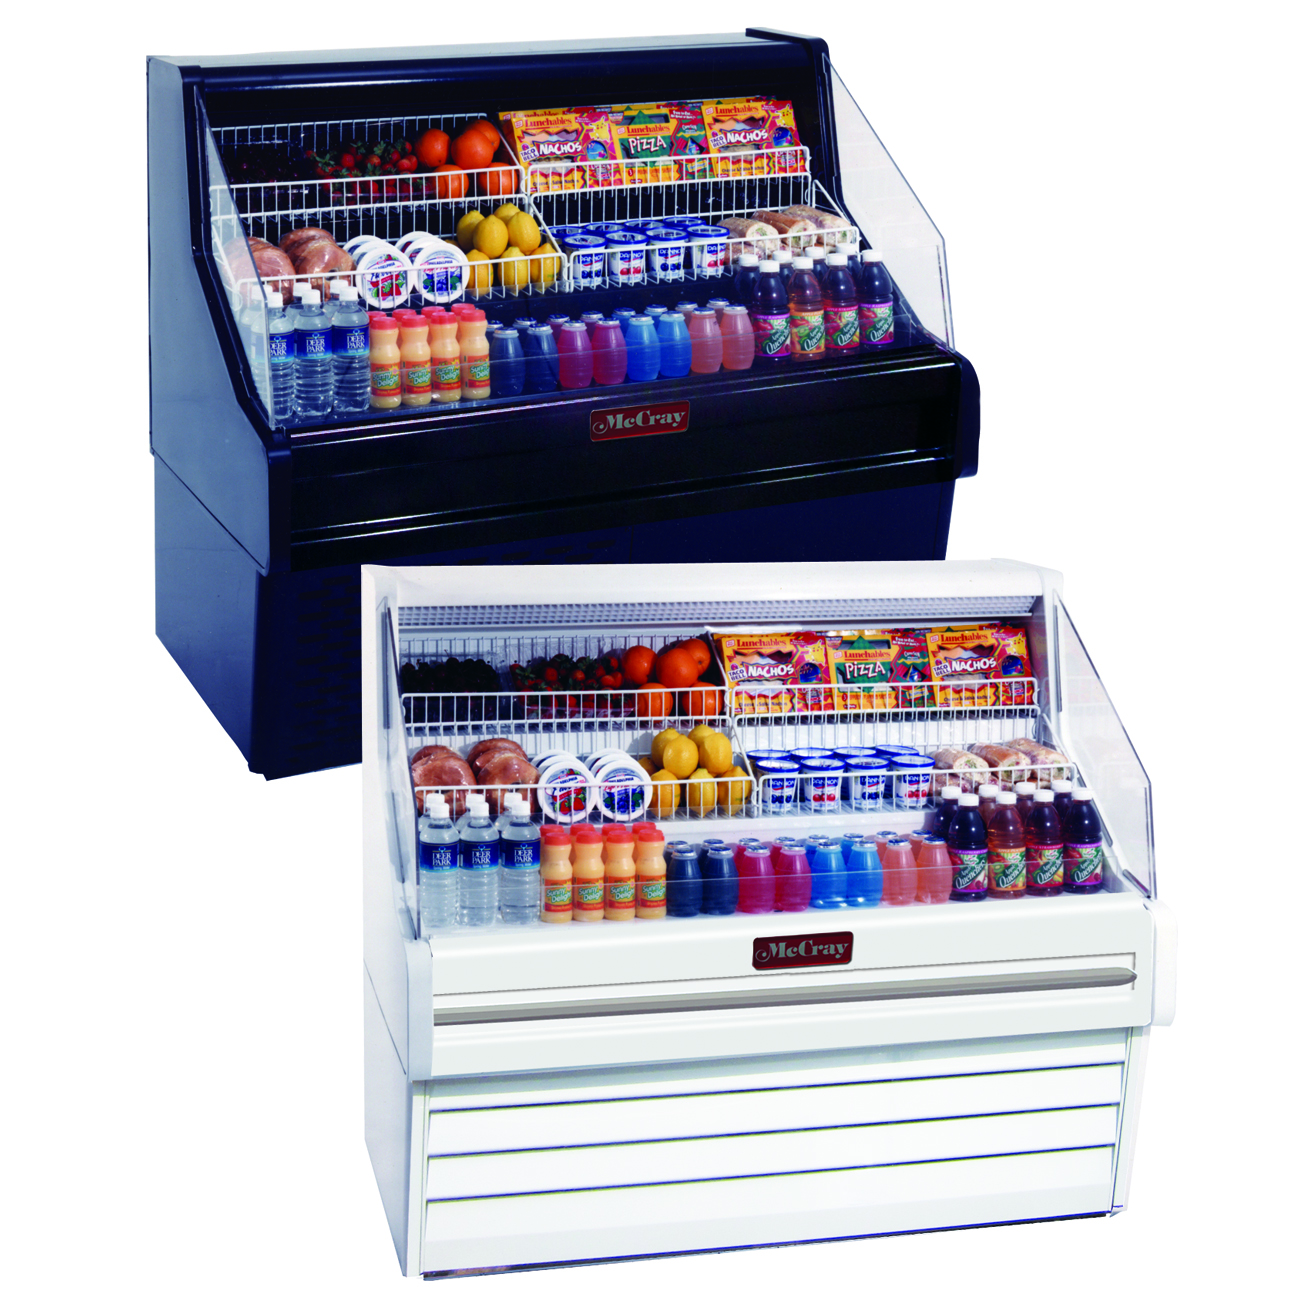 Howard-McCray R-OS30E-4-B-LED merchandiser, open refrigerated display